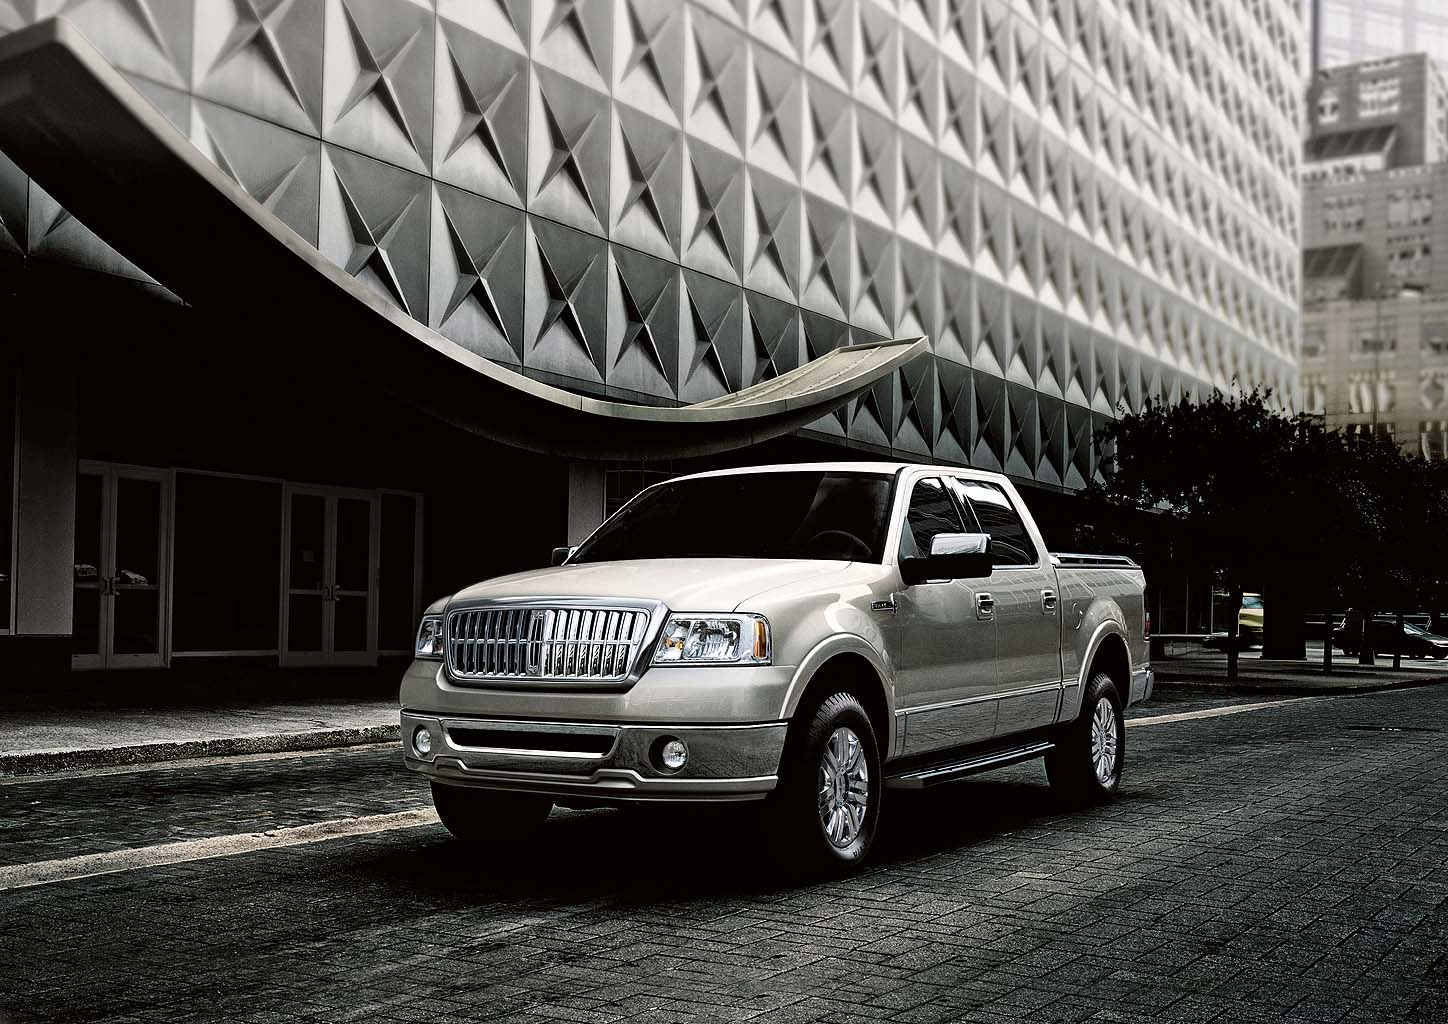 BMW Of Fresno >> New and Used Lincoln Mark LT: Prices, Photos, Reviews, Specs - The Car Connection